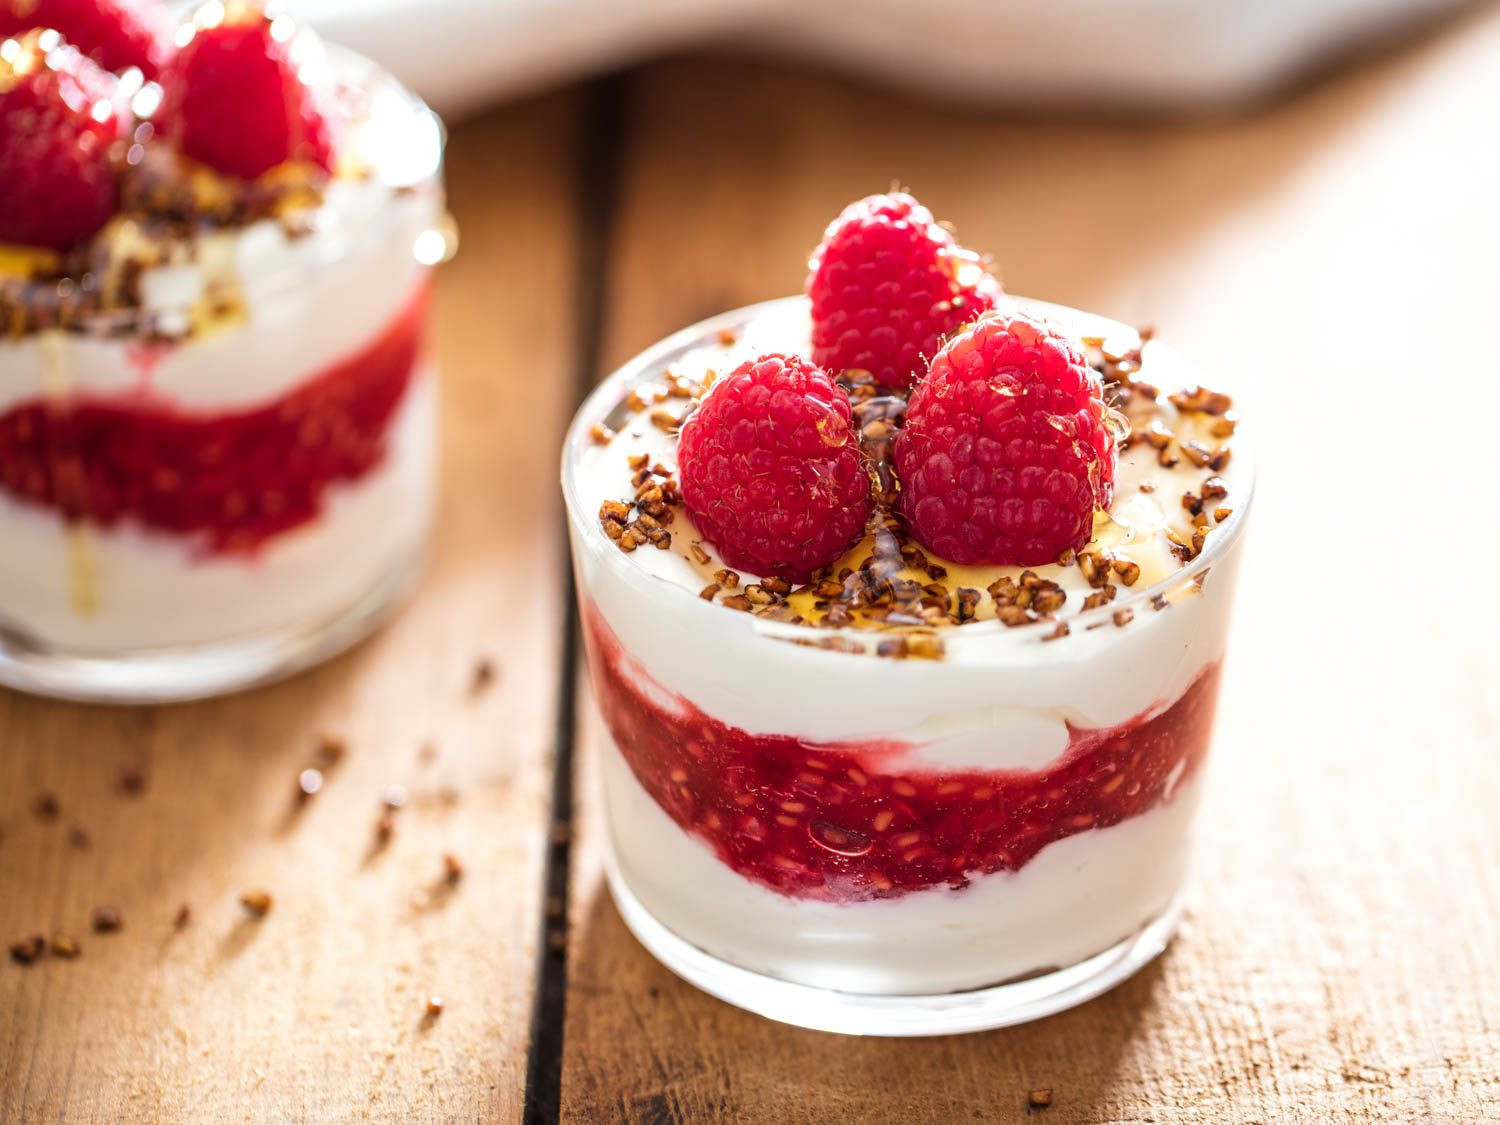 Desserts For One  Cranachan Scottish Whipped Cream With Whisky Raspberries